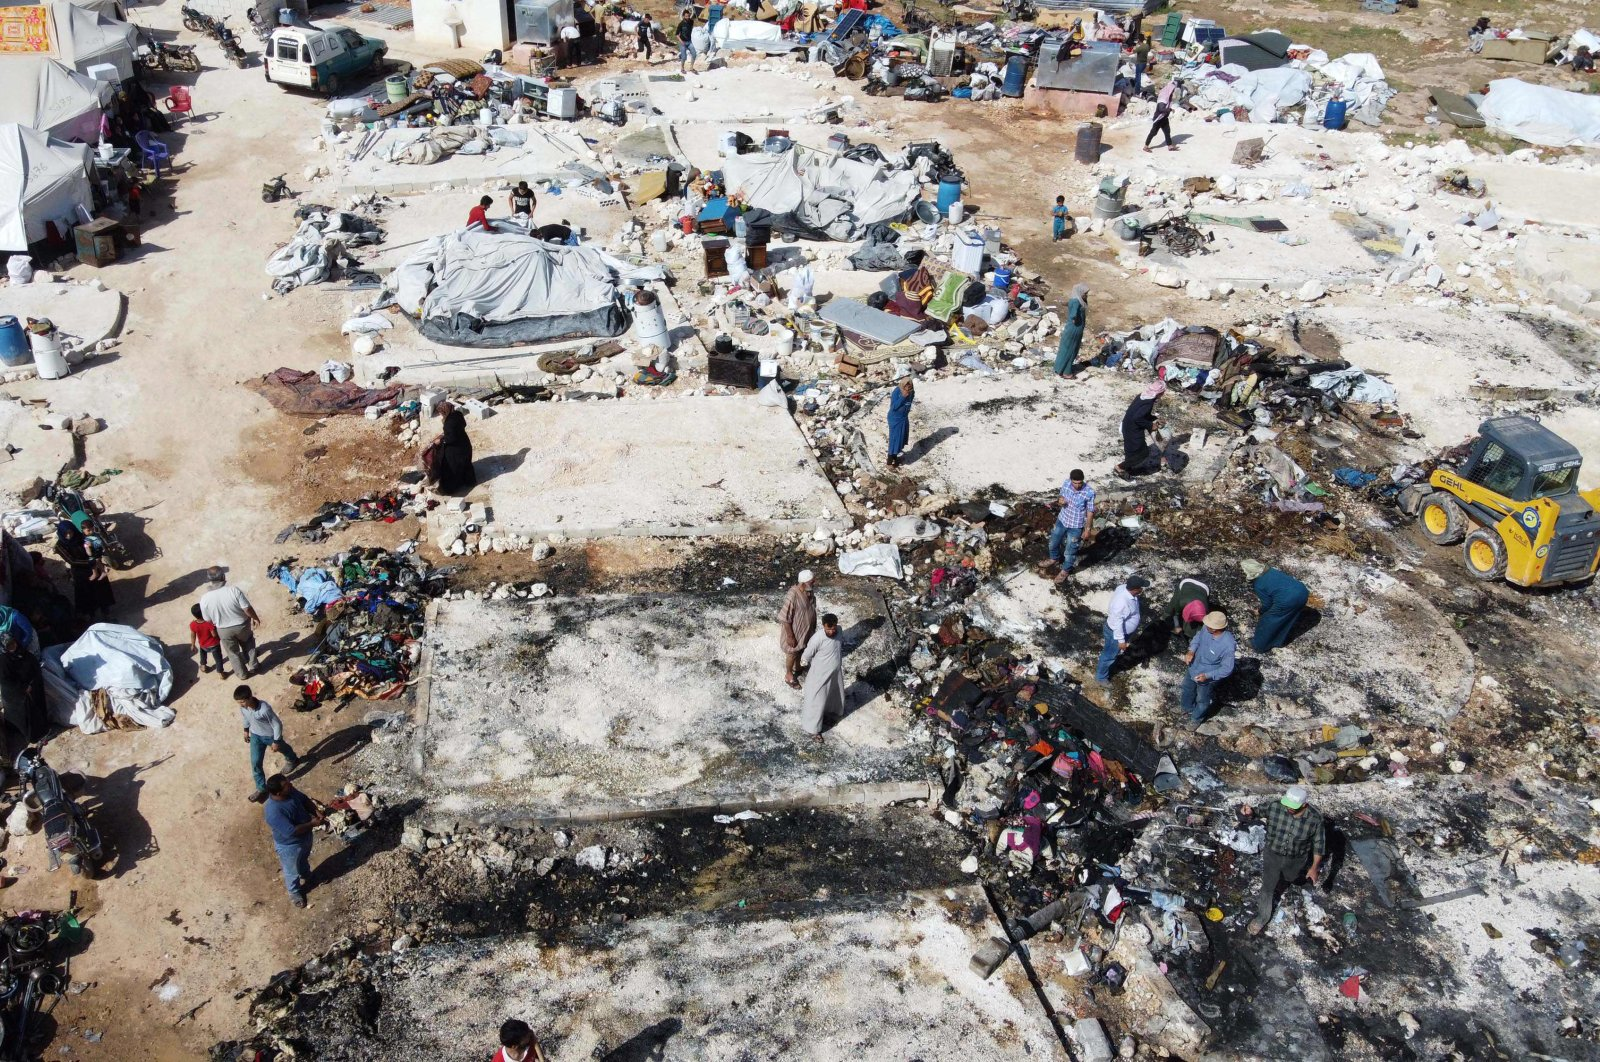 An aerial view shows charred tents after a fire that was reportedly caused by a cooking accident destroyed dozens of temporary shelters housing displaced Syrians, in the Deir Hassan camp for the displaced, in Idlib's northern countryside near the Turkish border, May 17, 2020. (AFP Photo)